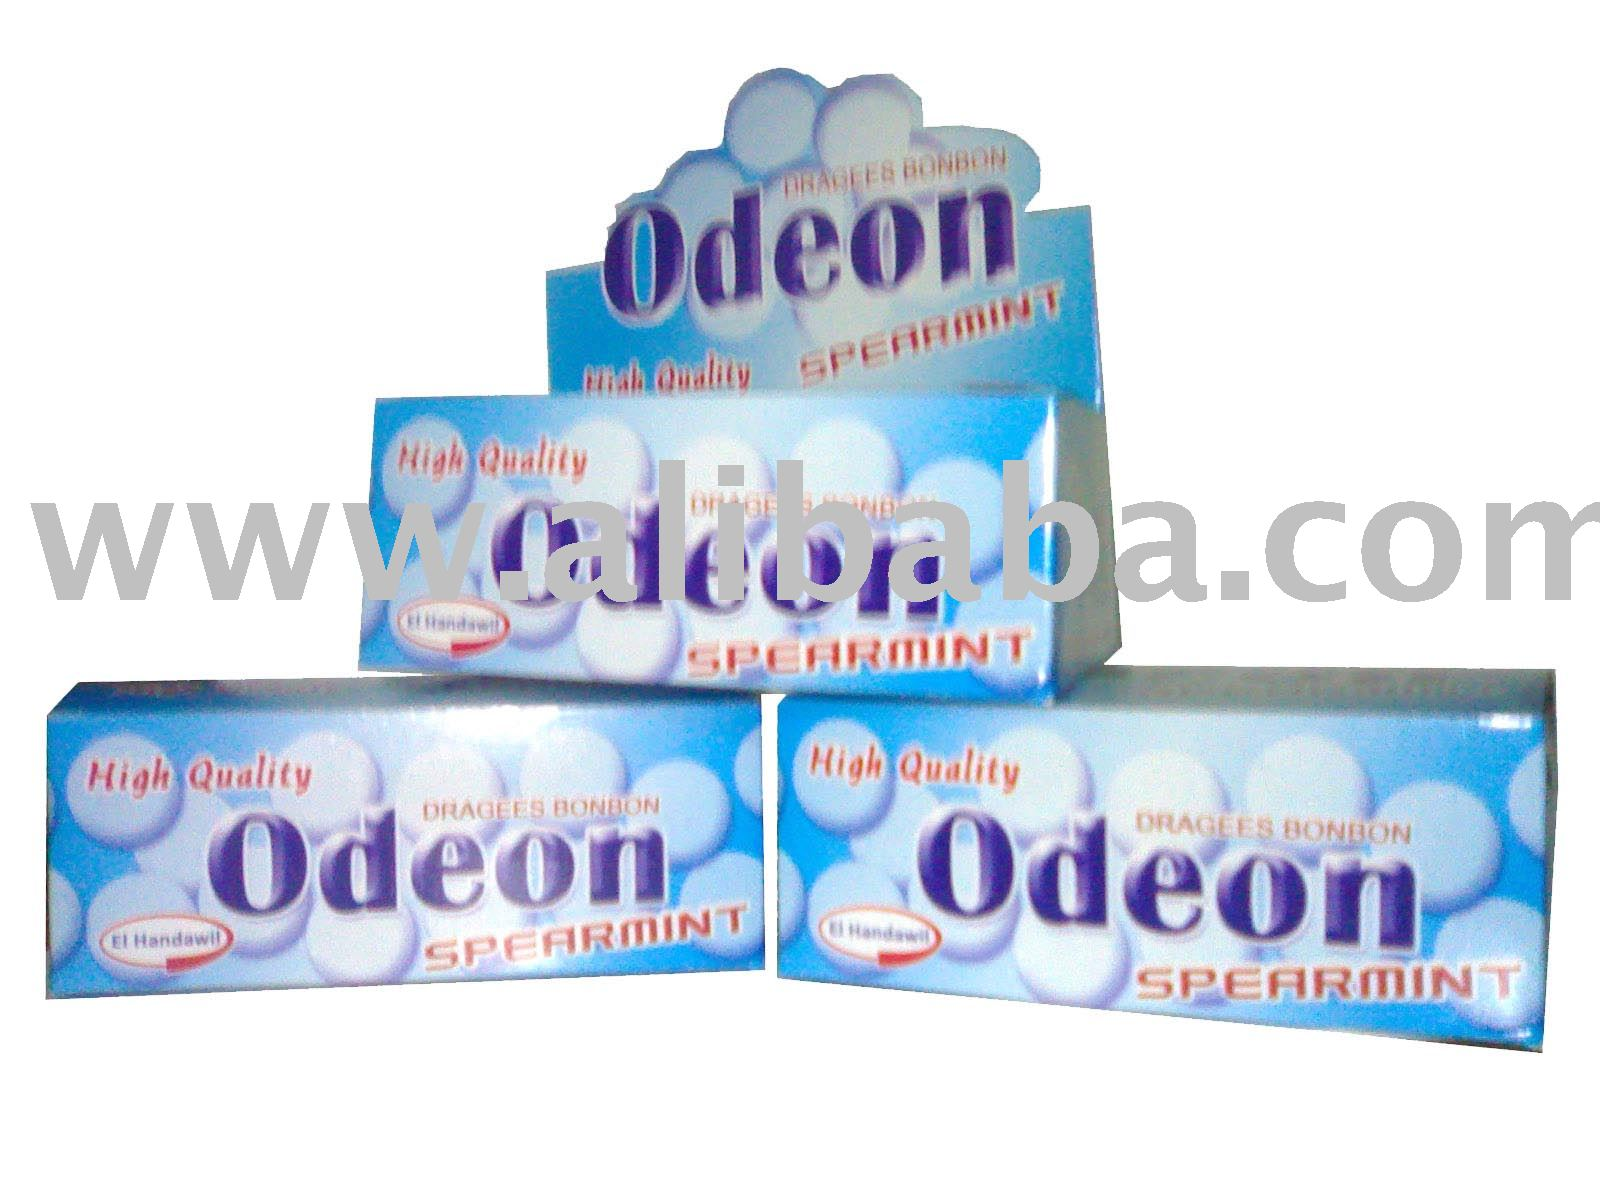 Odeon (Spearmint)  Confectionery